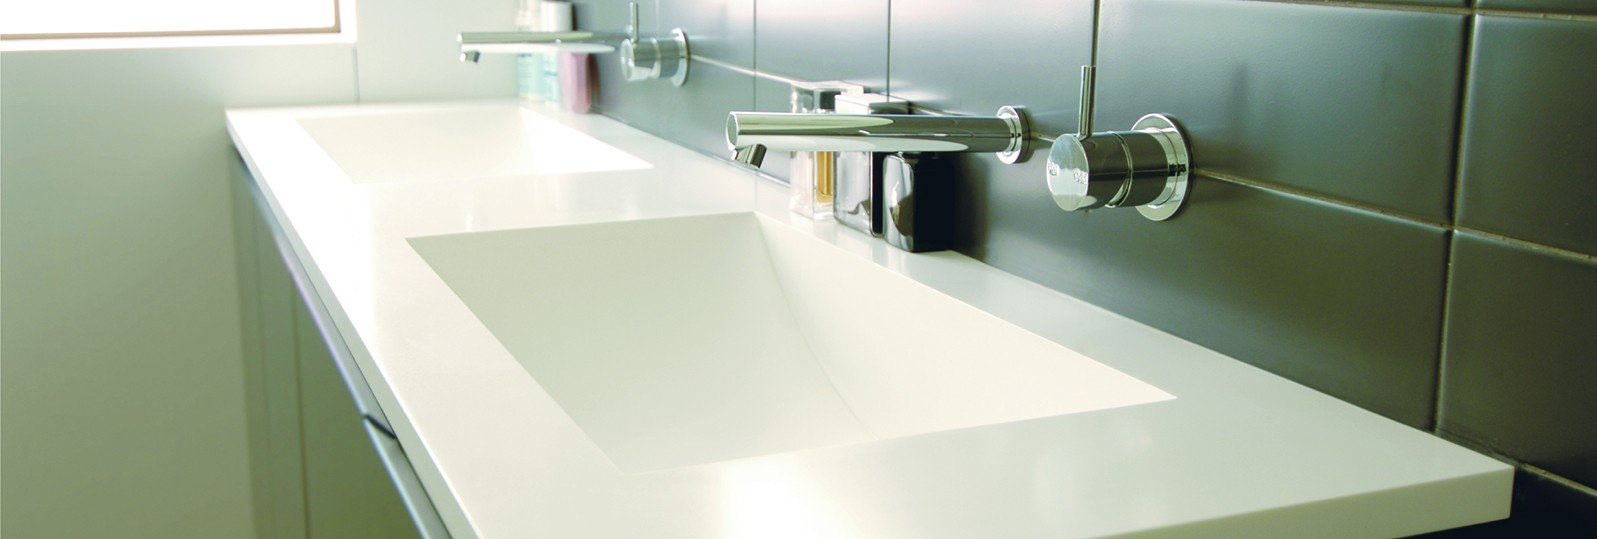 hanex white double sinks washroom